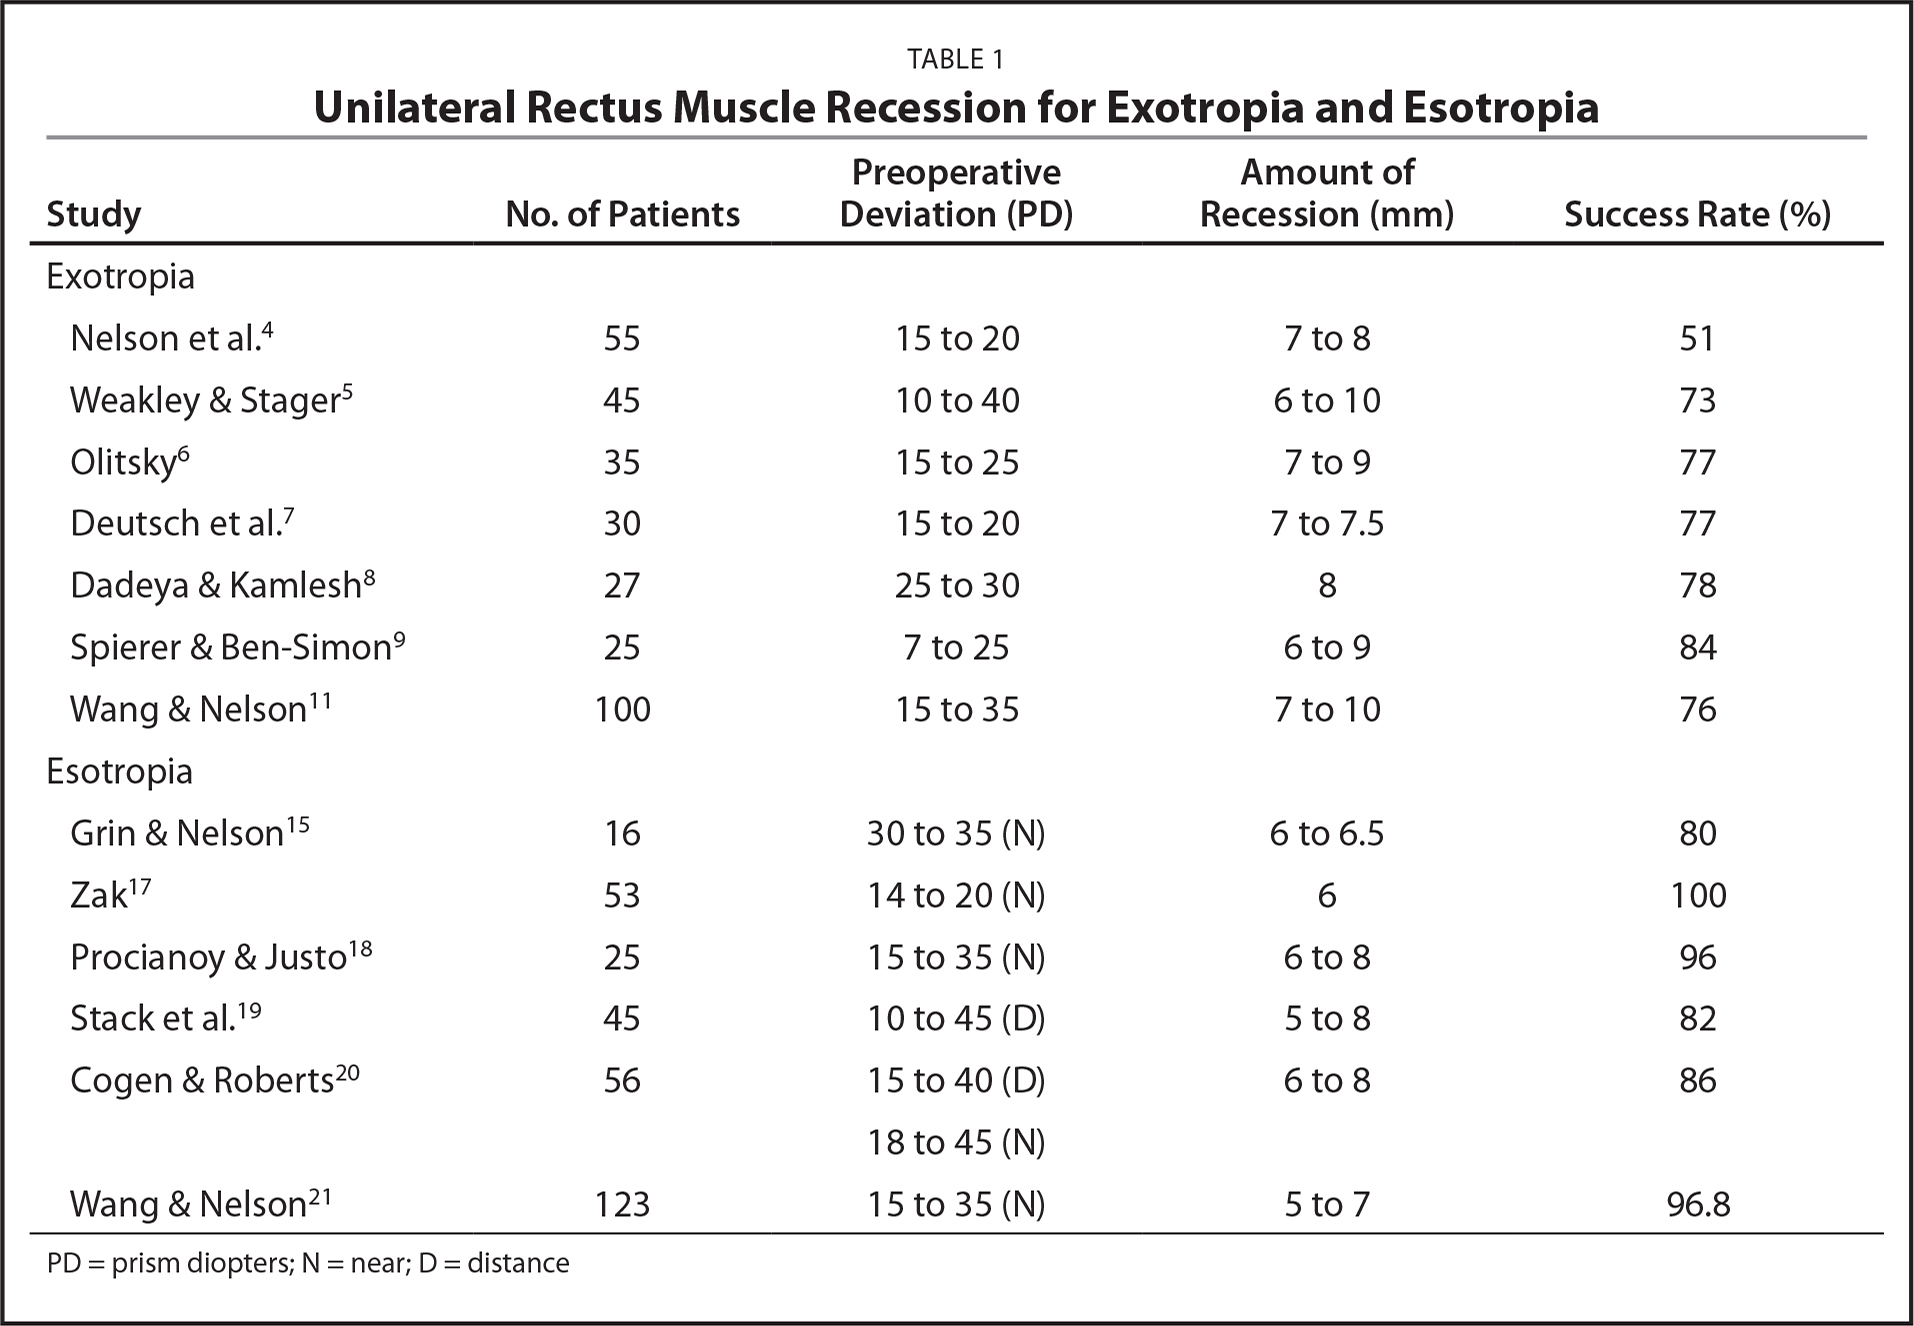 Unilateral Rectus Muscle Recession for Exotropia and Esotropia